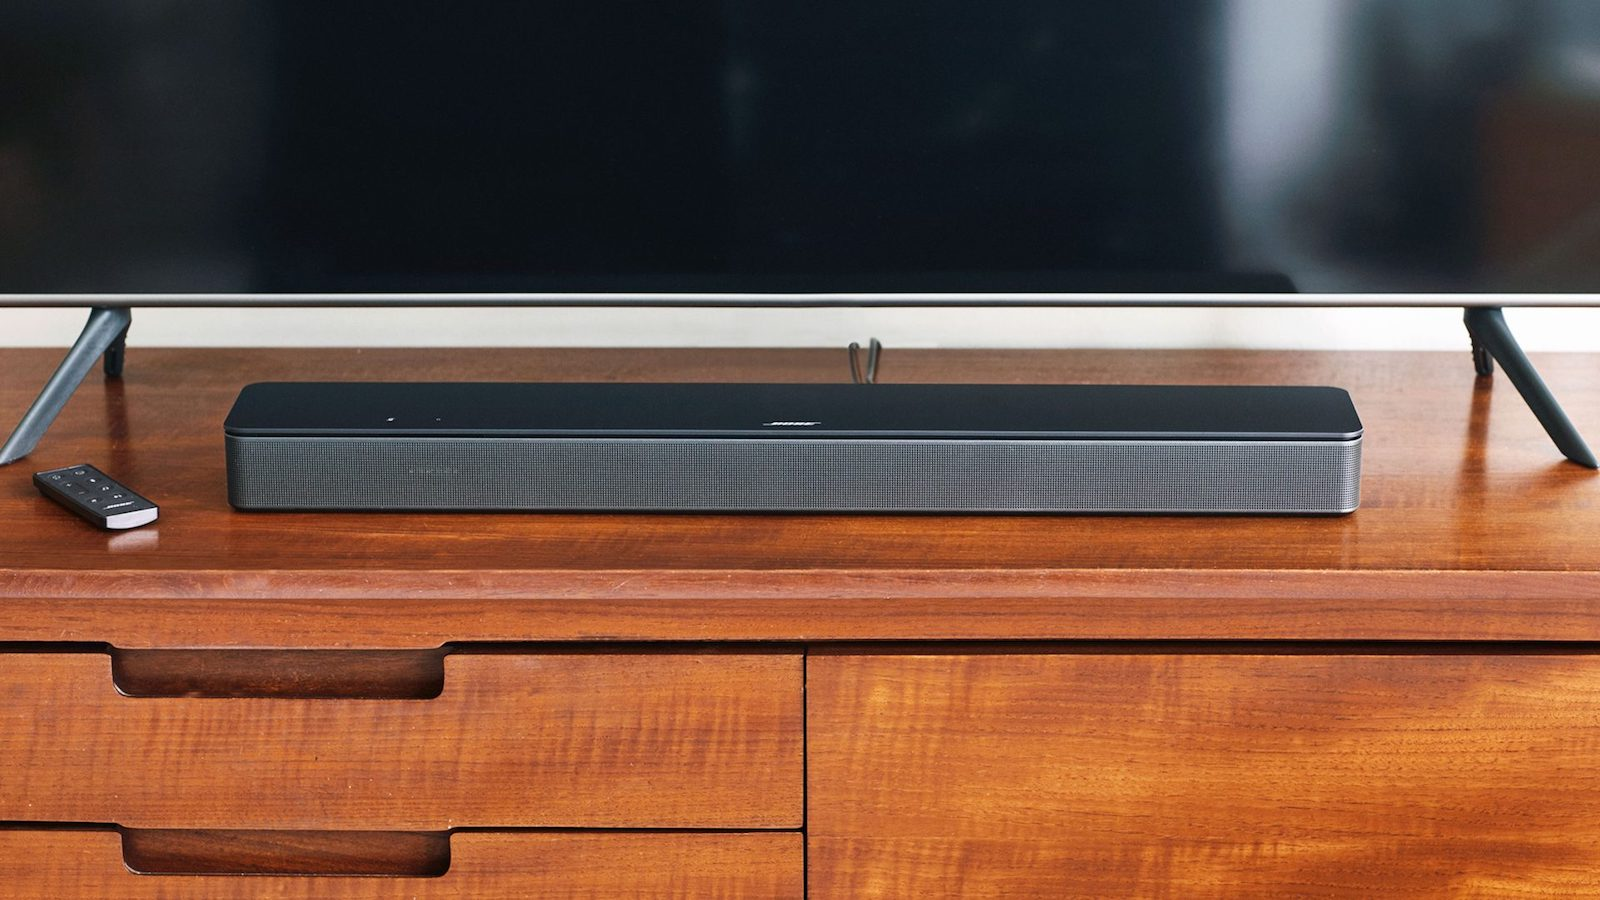 Bose Smart Soundbar 300 sleek speaker gives you spacious sound